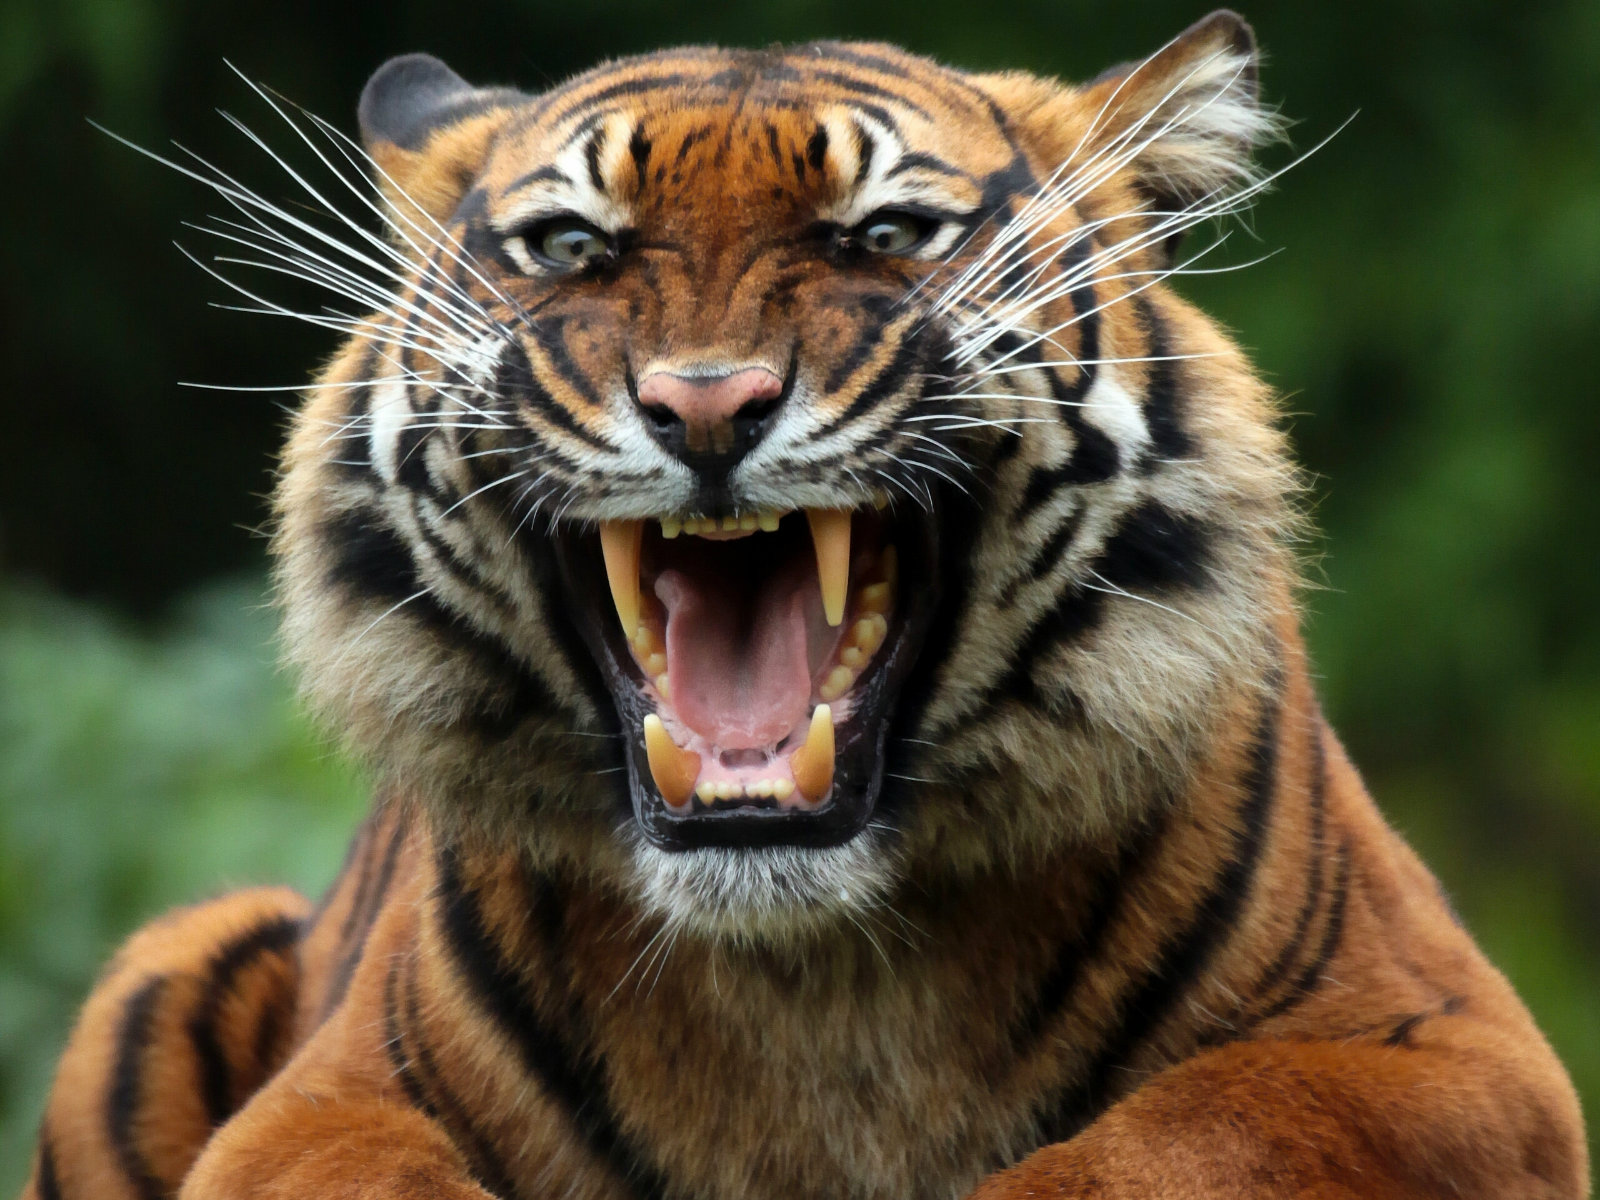 Tiger Pics Wallpaper Tiger Hd Wallpapers Tiger Pictures - Angry Roaring Tiger , HD Wallpaper & Backgrounds